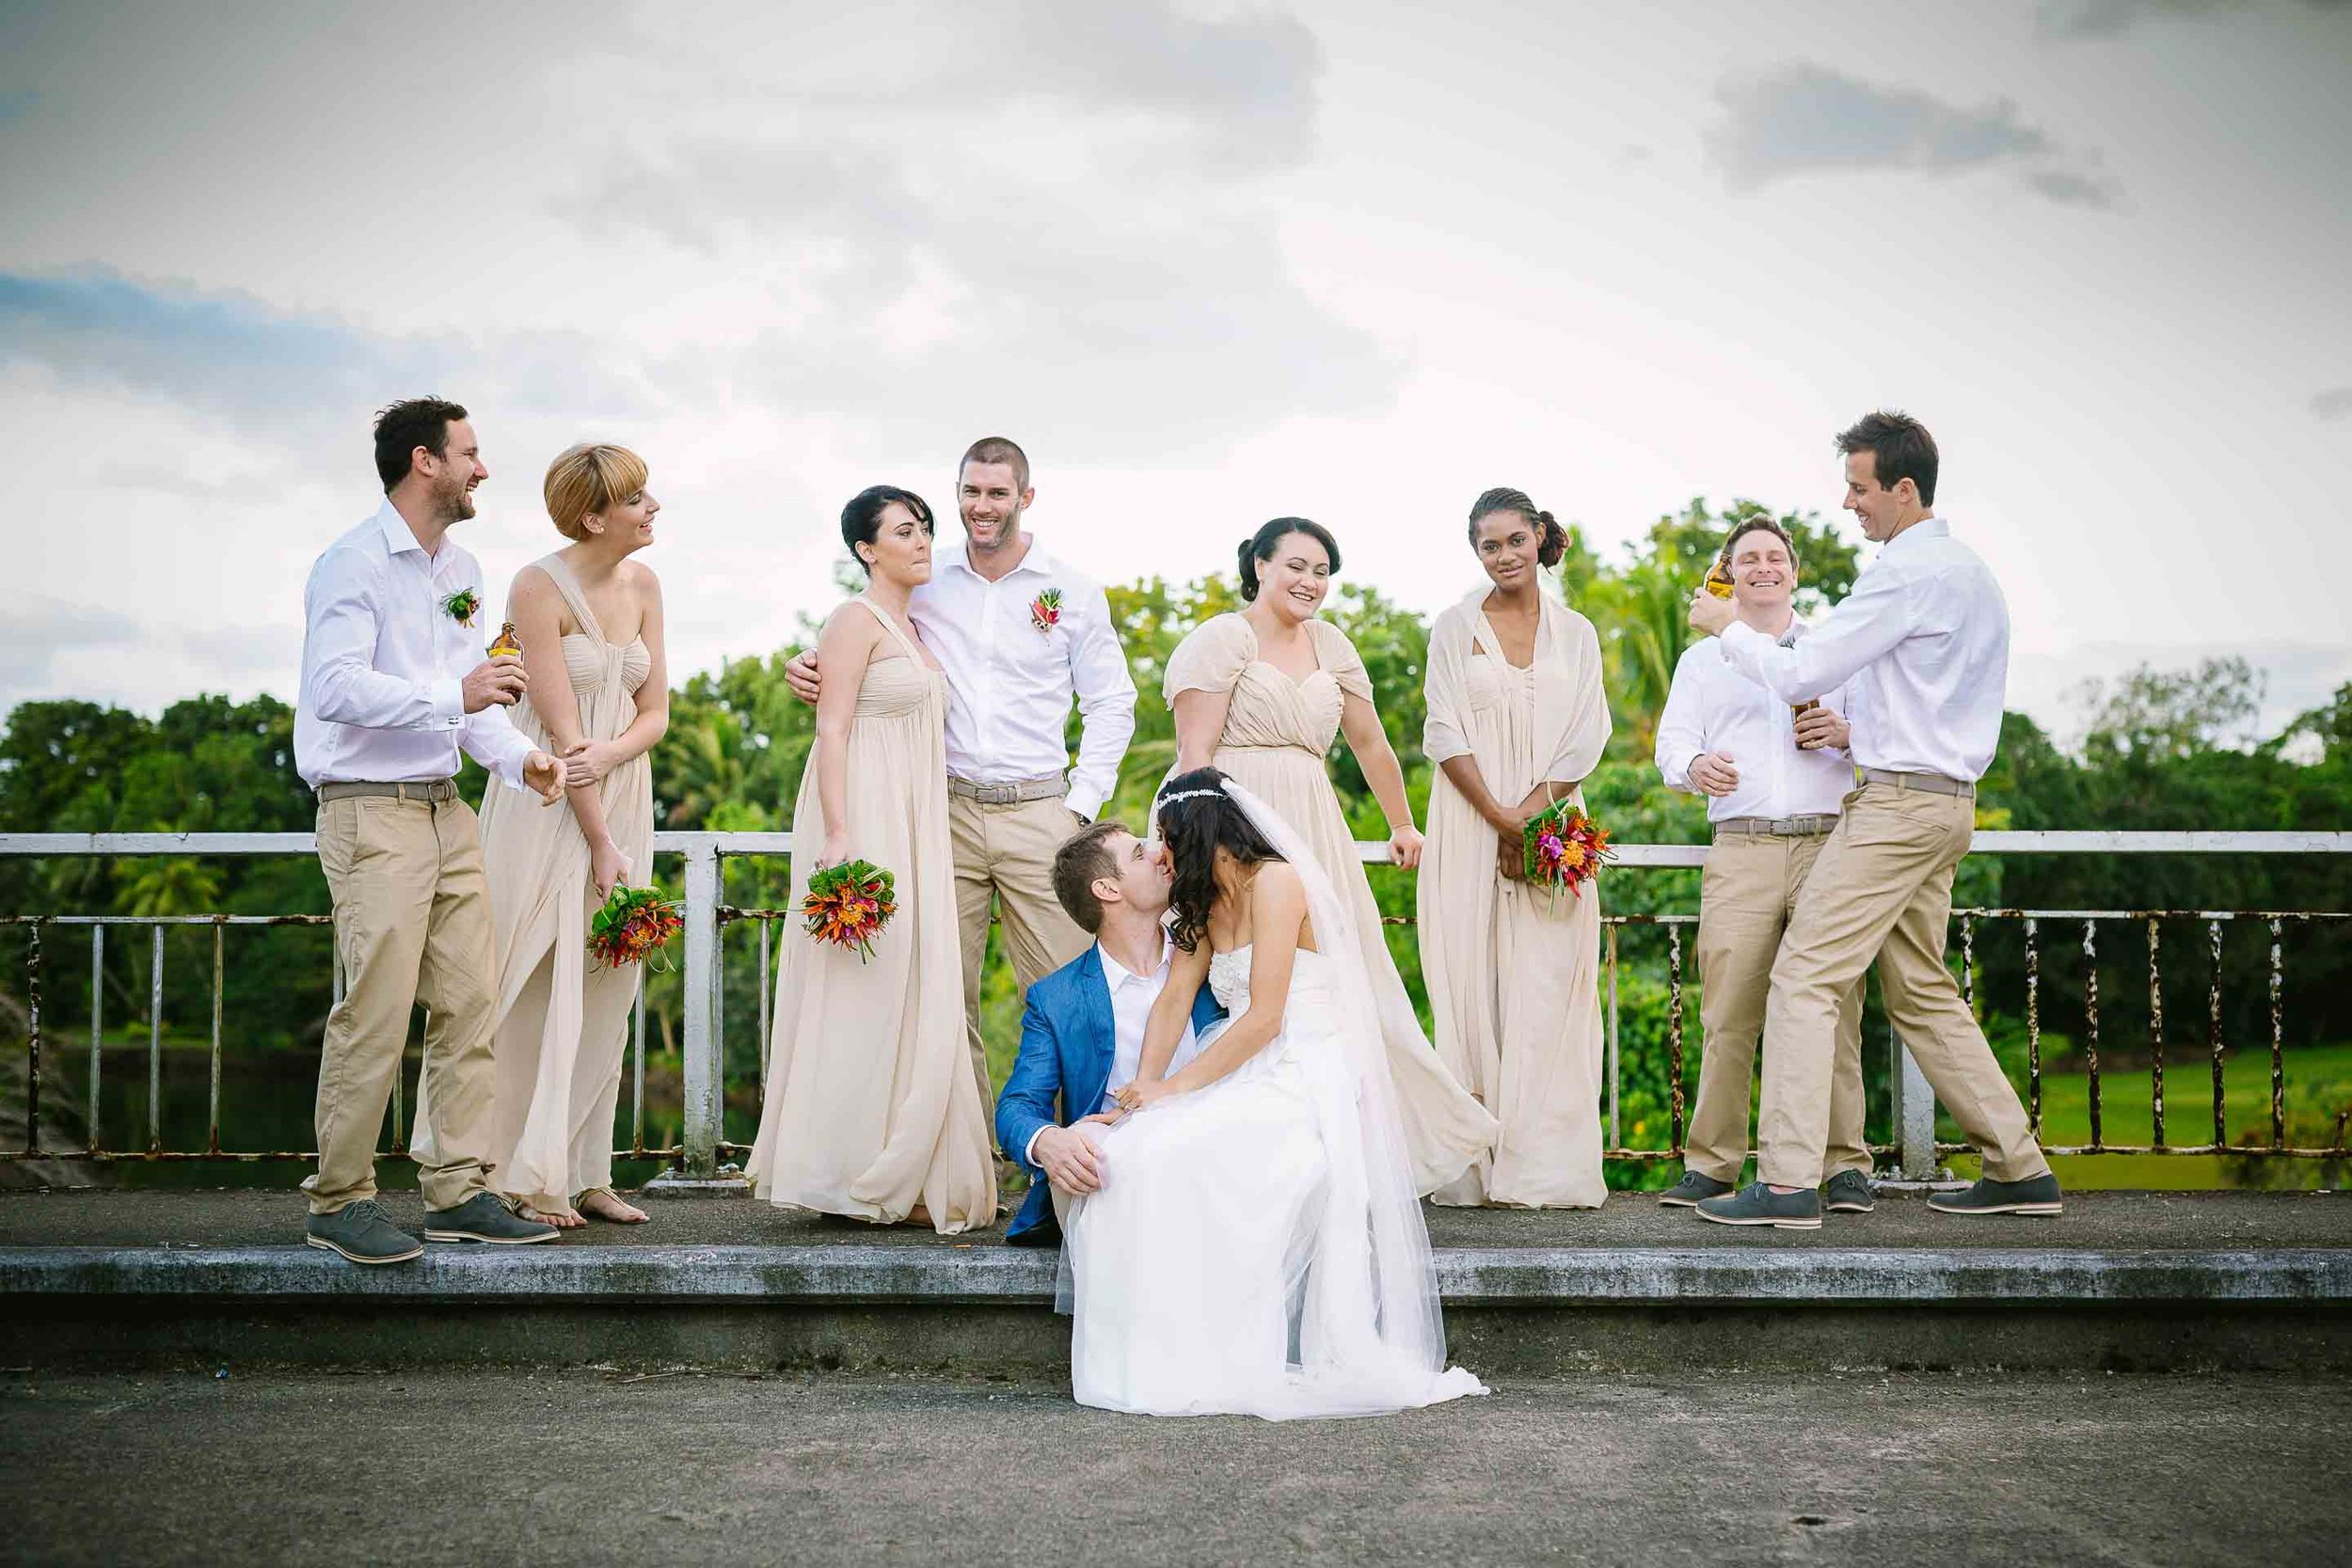 the bridal party sharing a fun moment on an old bridge